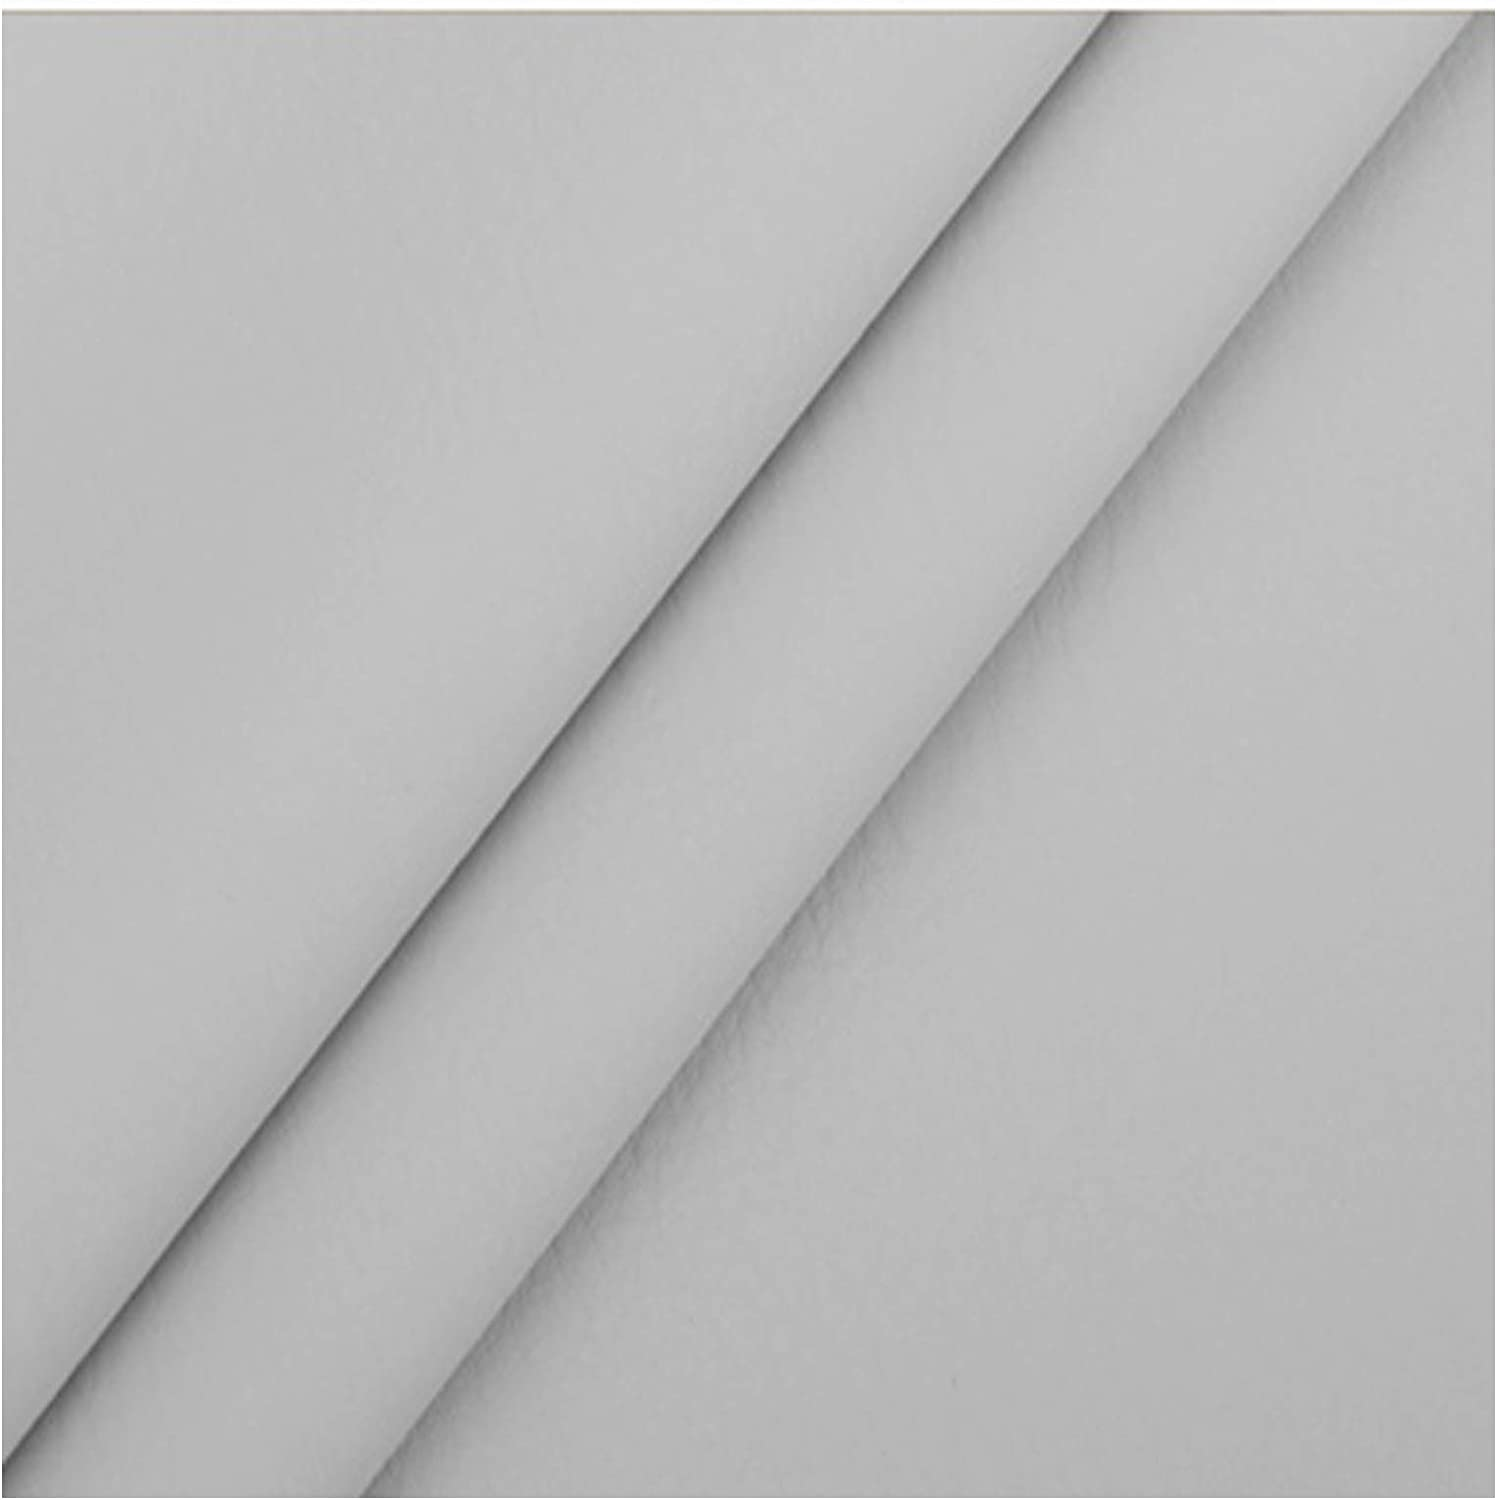 Grained Faux Leather Fabric OFFicial store 1.2mm Thick Leatherette Columbus Mall Leathe Vinyl